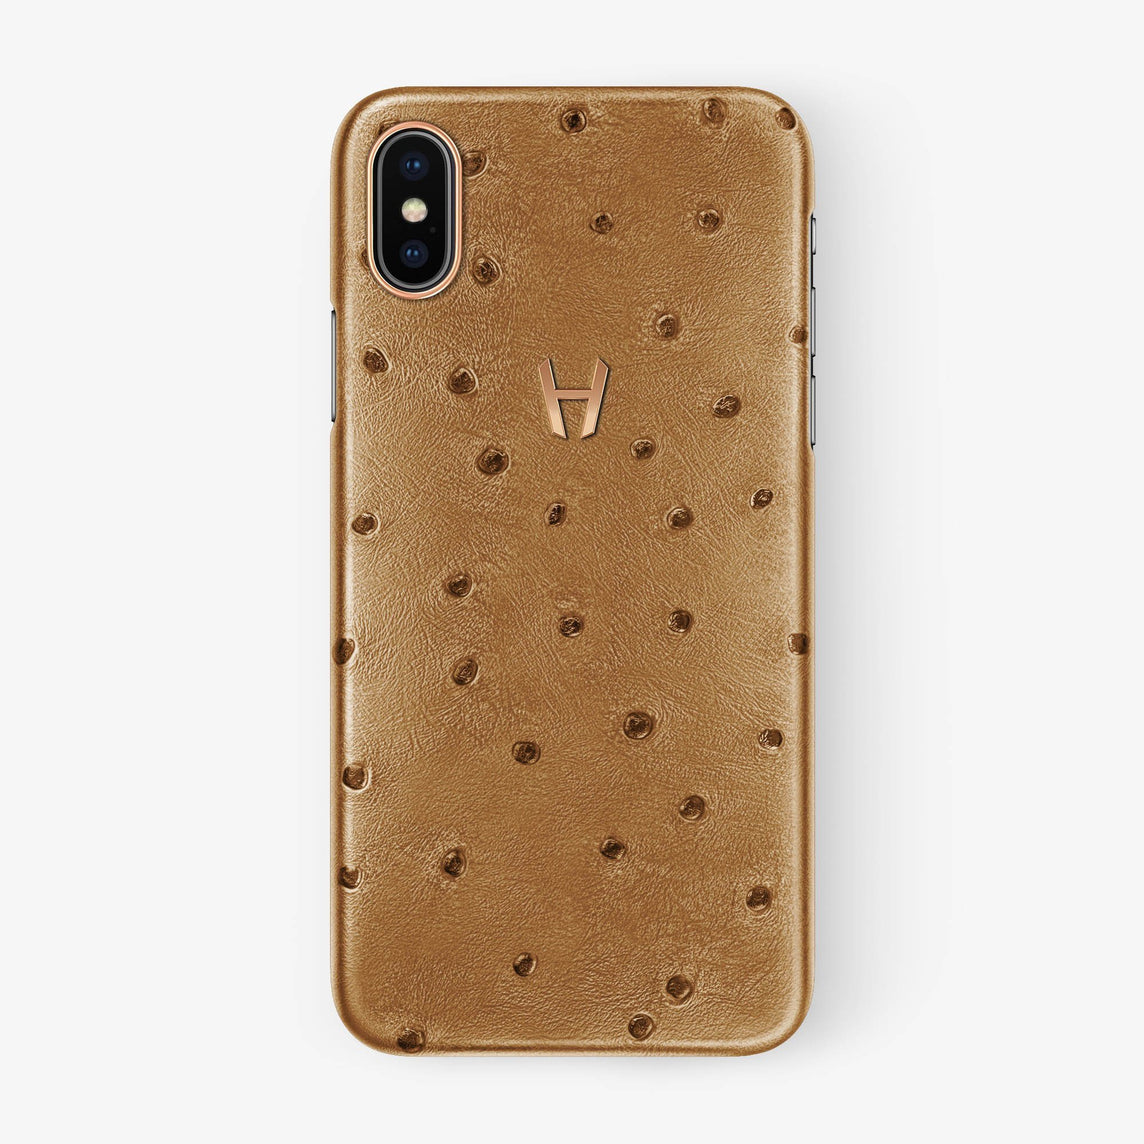 Chestnut Ostrich iPhone Case for iPhone XS Max finishing rose gold - Hadoro Luxury Cases